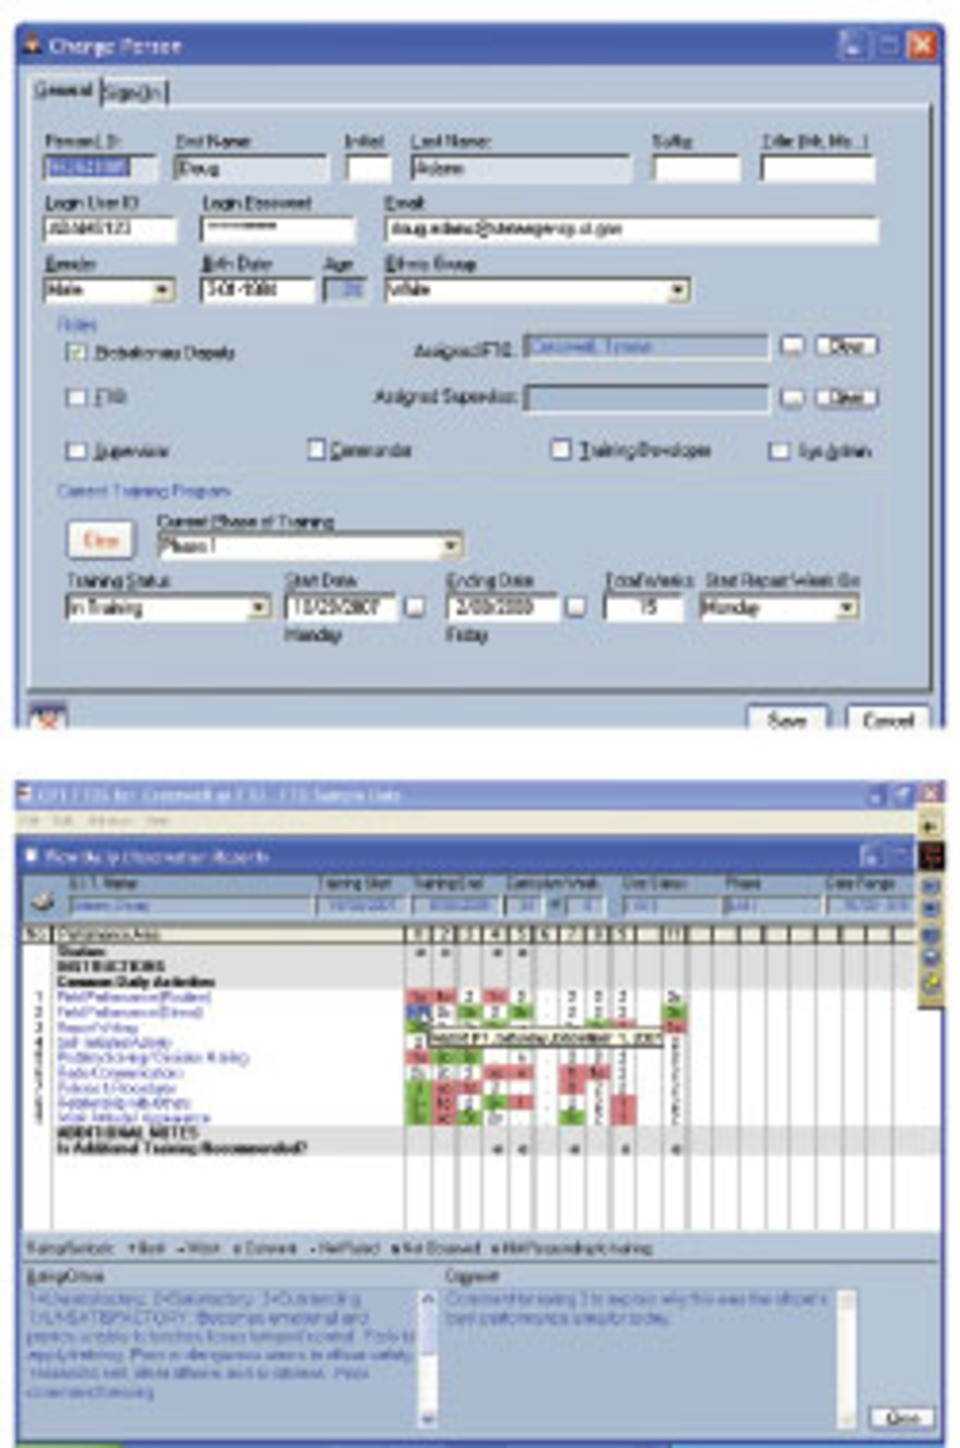 FTO training management software allows program administrators to enter  personal information, and scores recruits in a variety of activities. SHOW  CAPTION